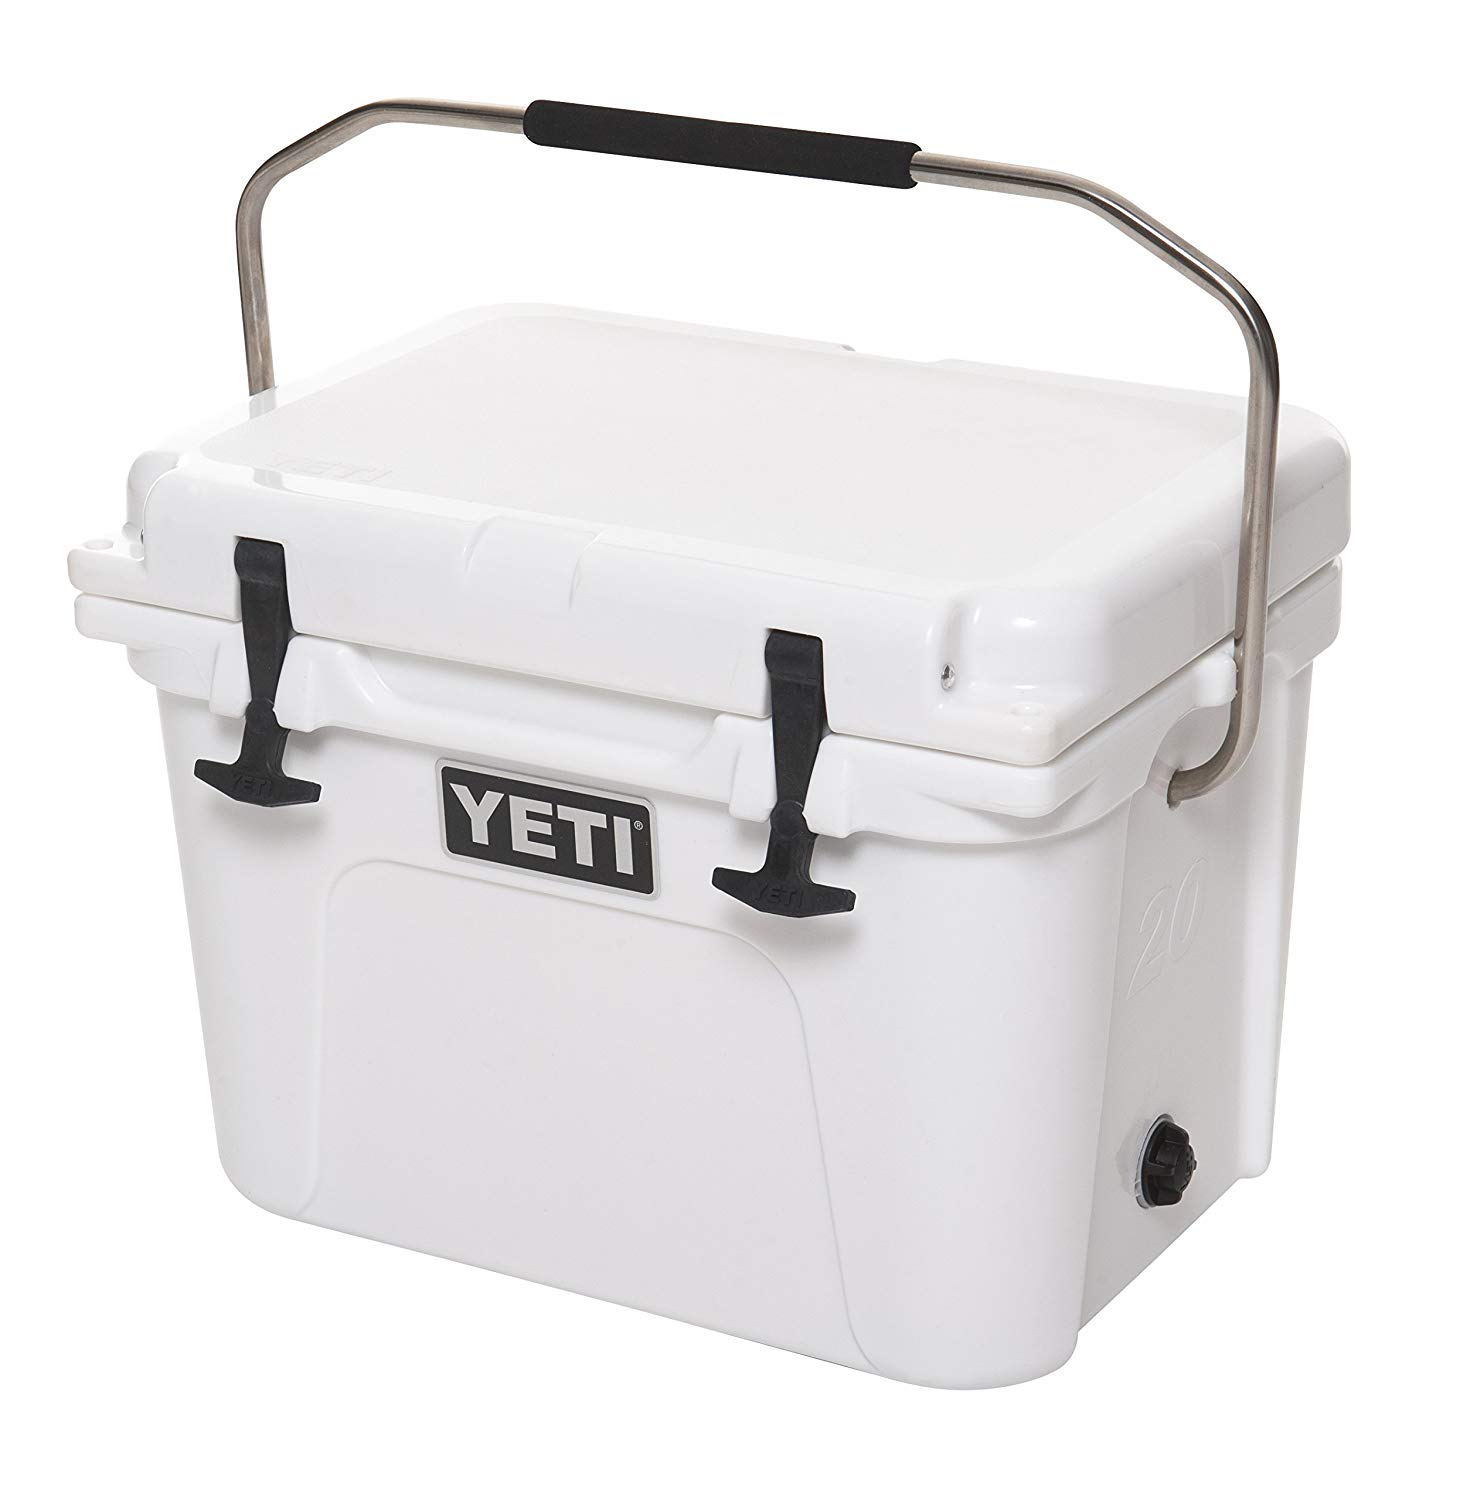 YETI Roadie 20 Cooler, White | Best Beer coolers